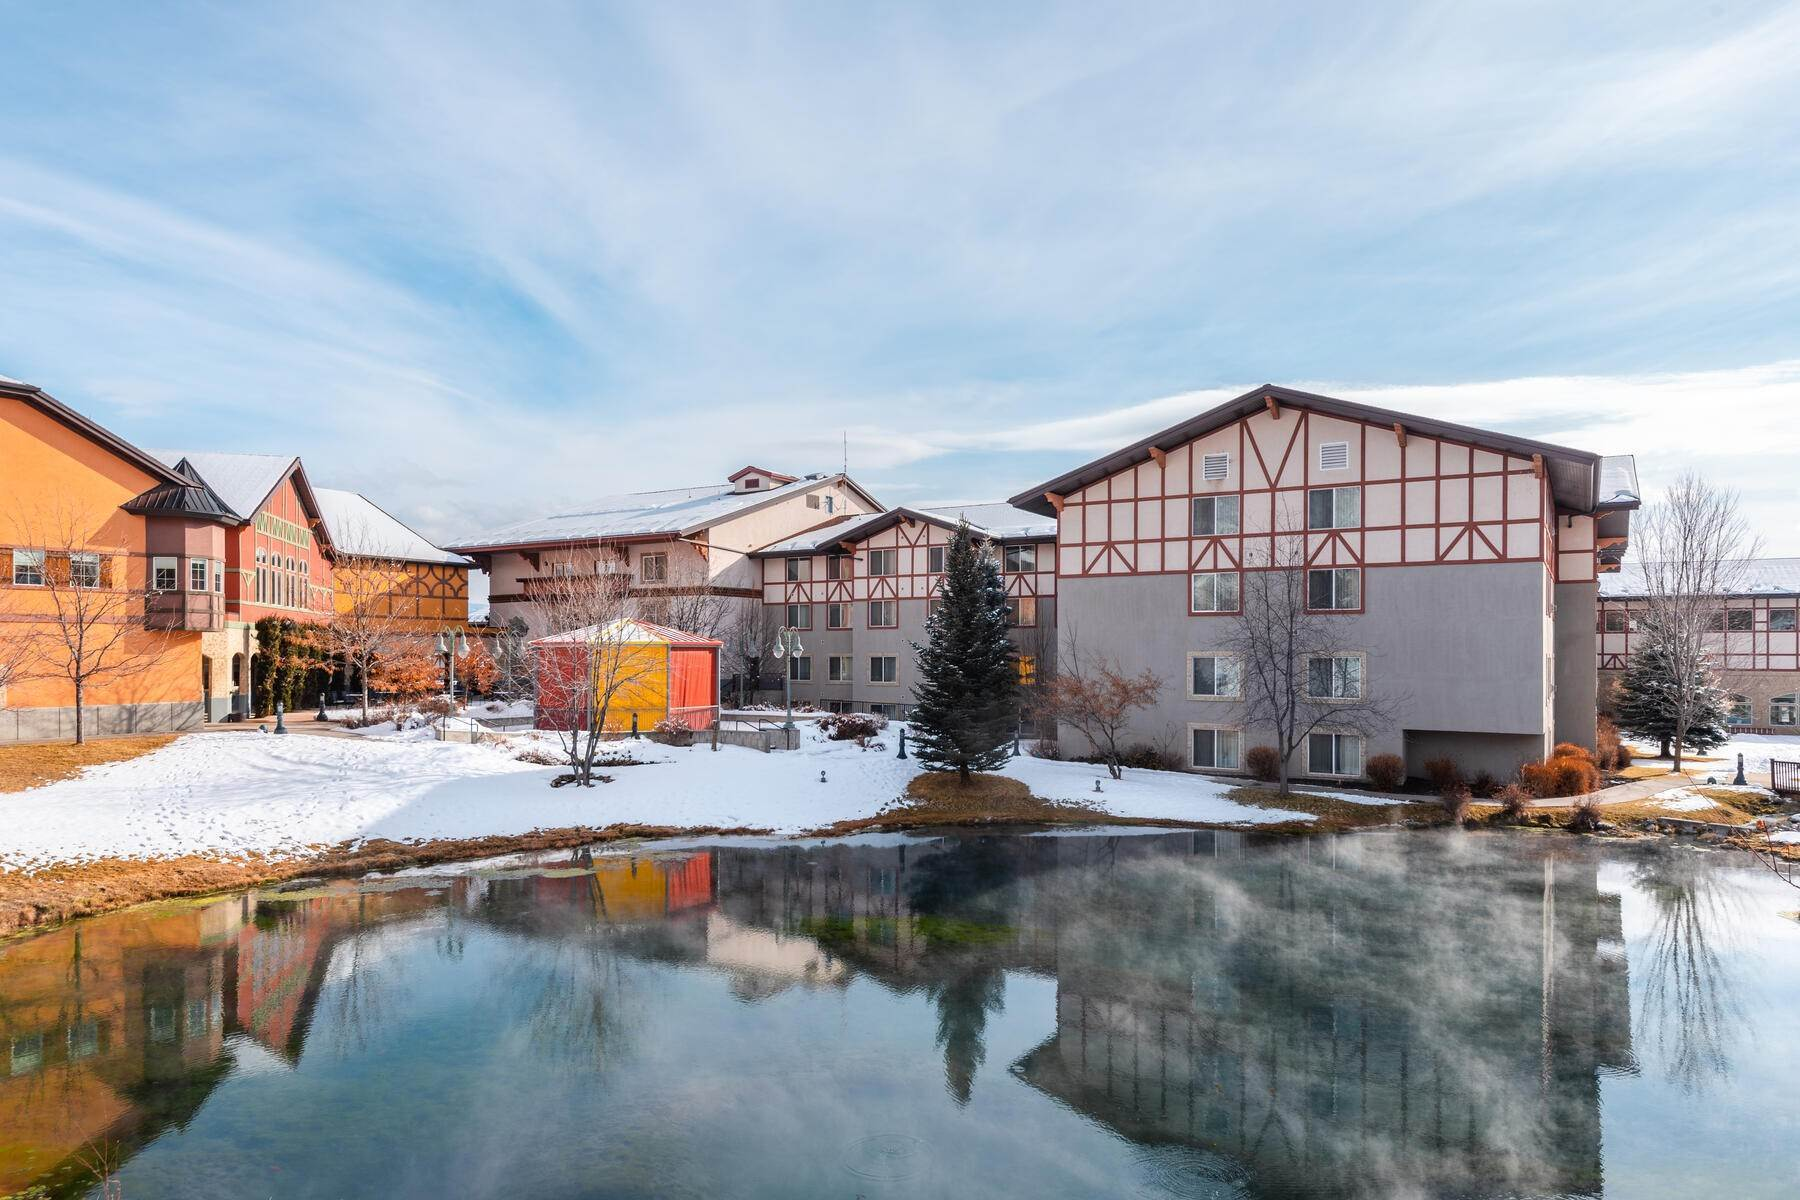 12. Condominiums for Sale at Lovely Studio Overlooking the Courtyard! 784 W Resort Drive, #234 Midway, Utah 84049 United States